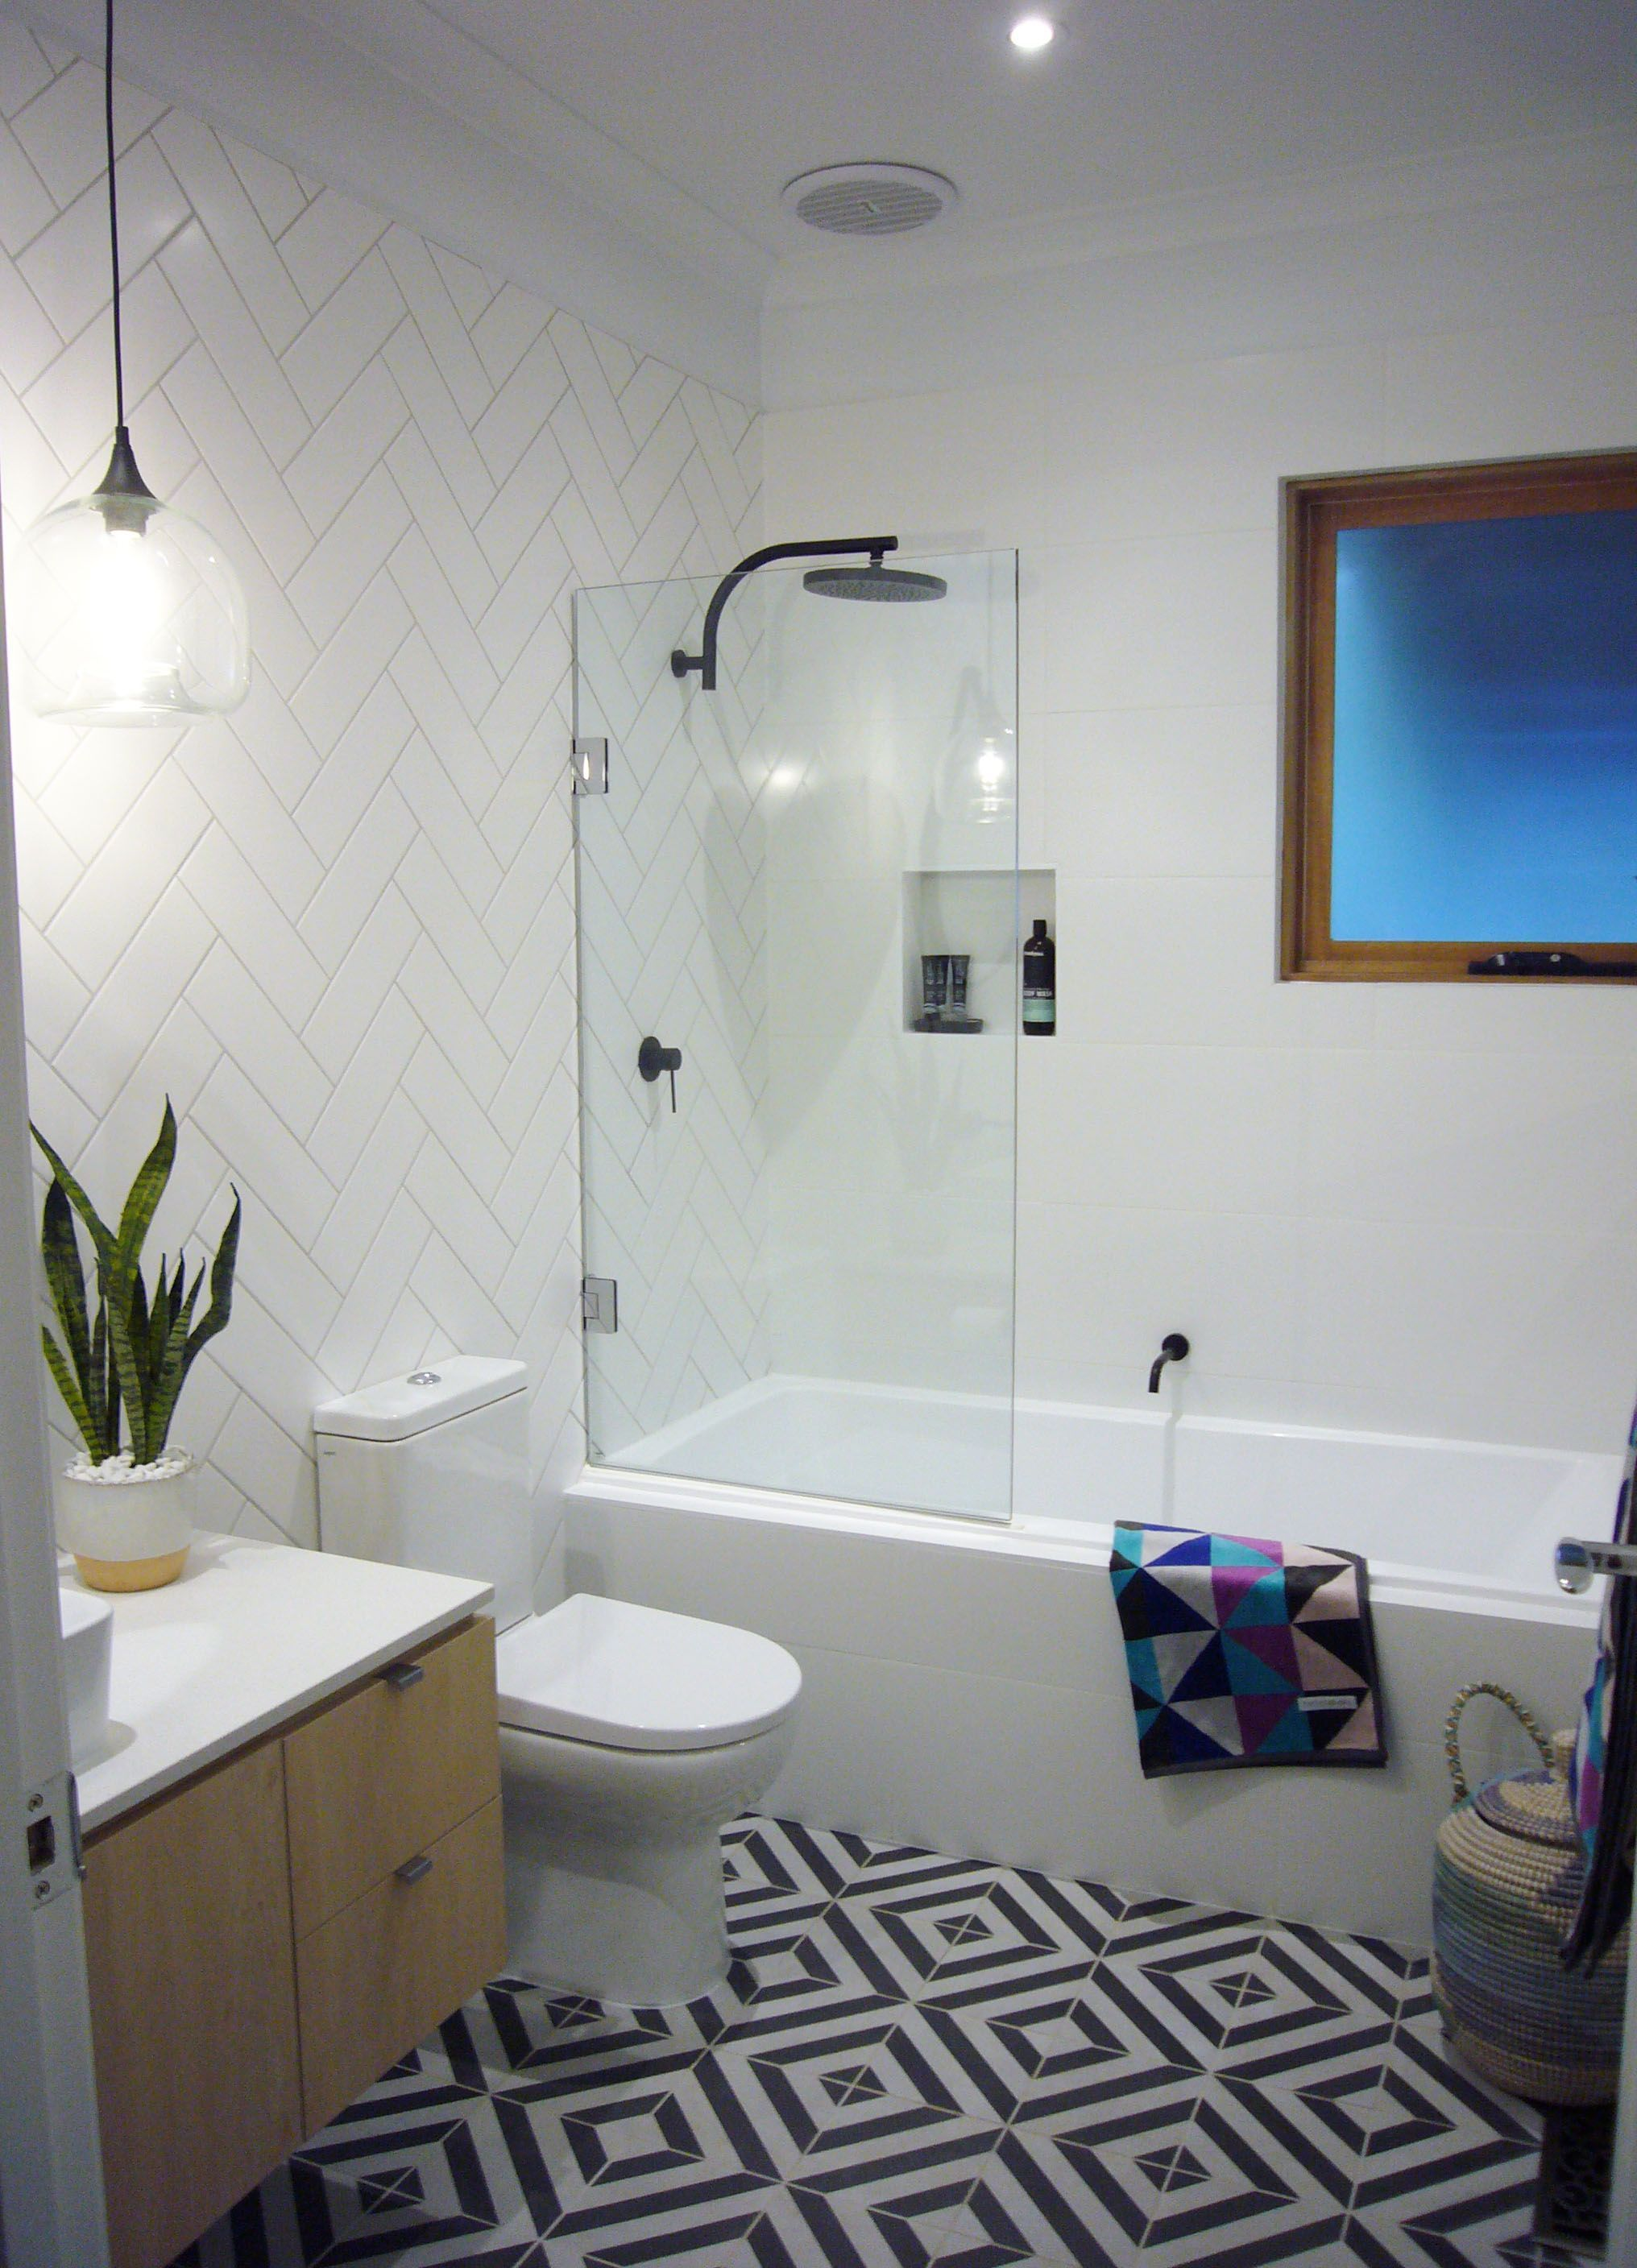 Before and After: 9 Small Bathroom Makeovers That Amazing | Budget ...